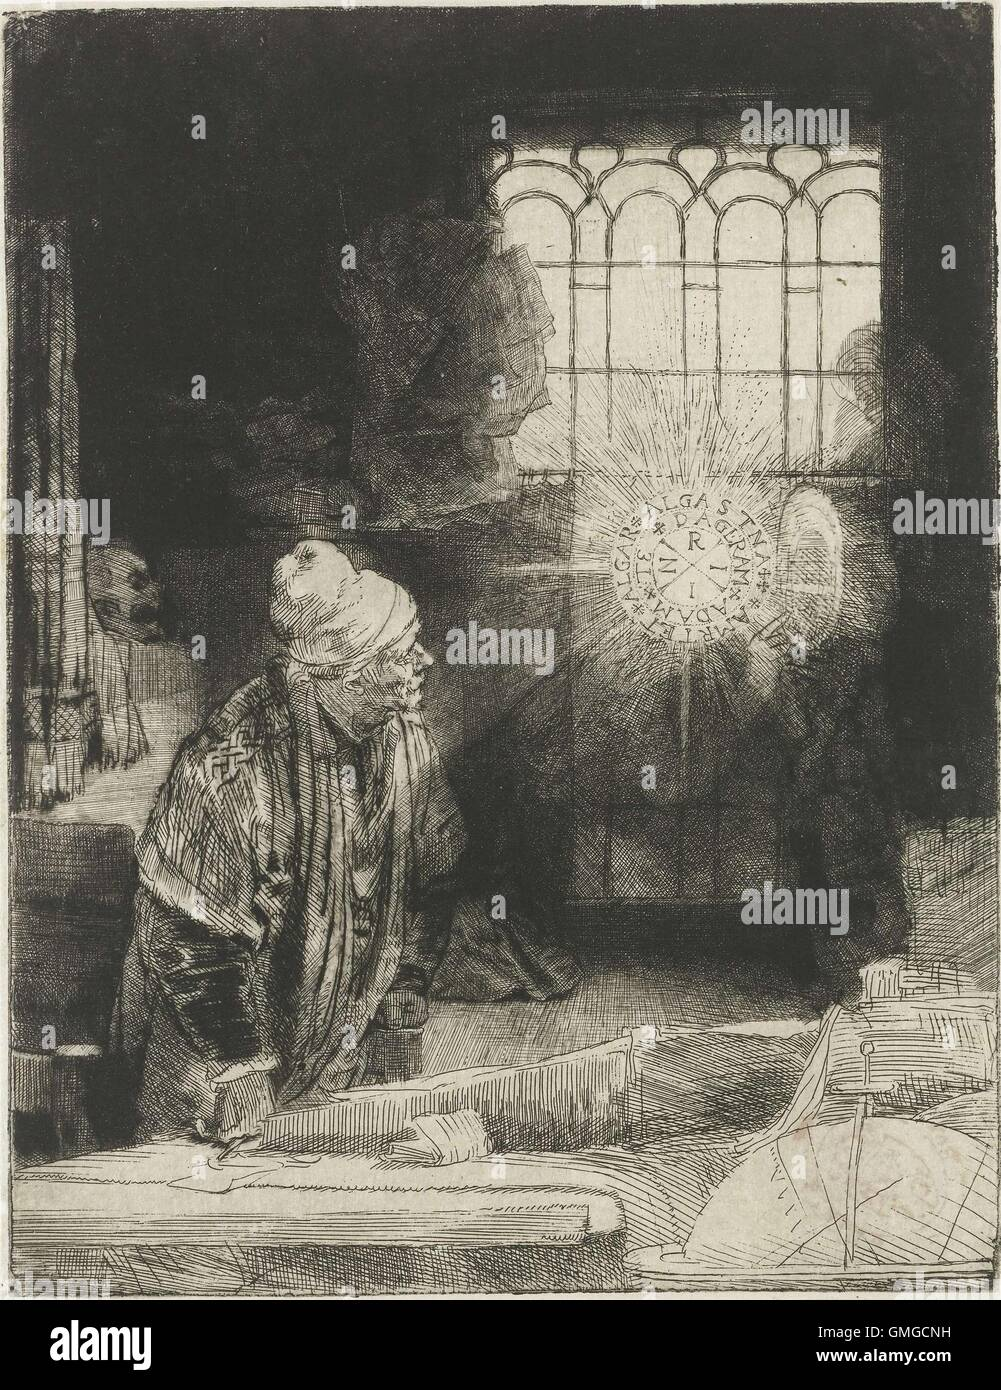 A Scholar in his Study, by Rembrandt van Rijn, 1650-54, Dutch print, etching on an apparition of a disc of light - Stock Image